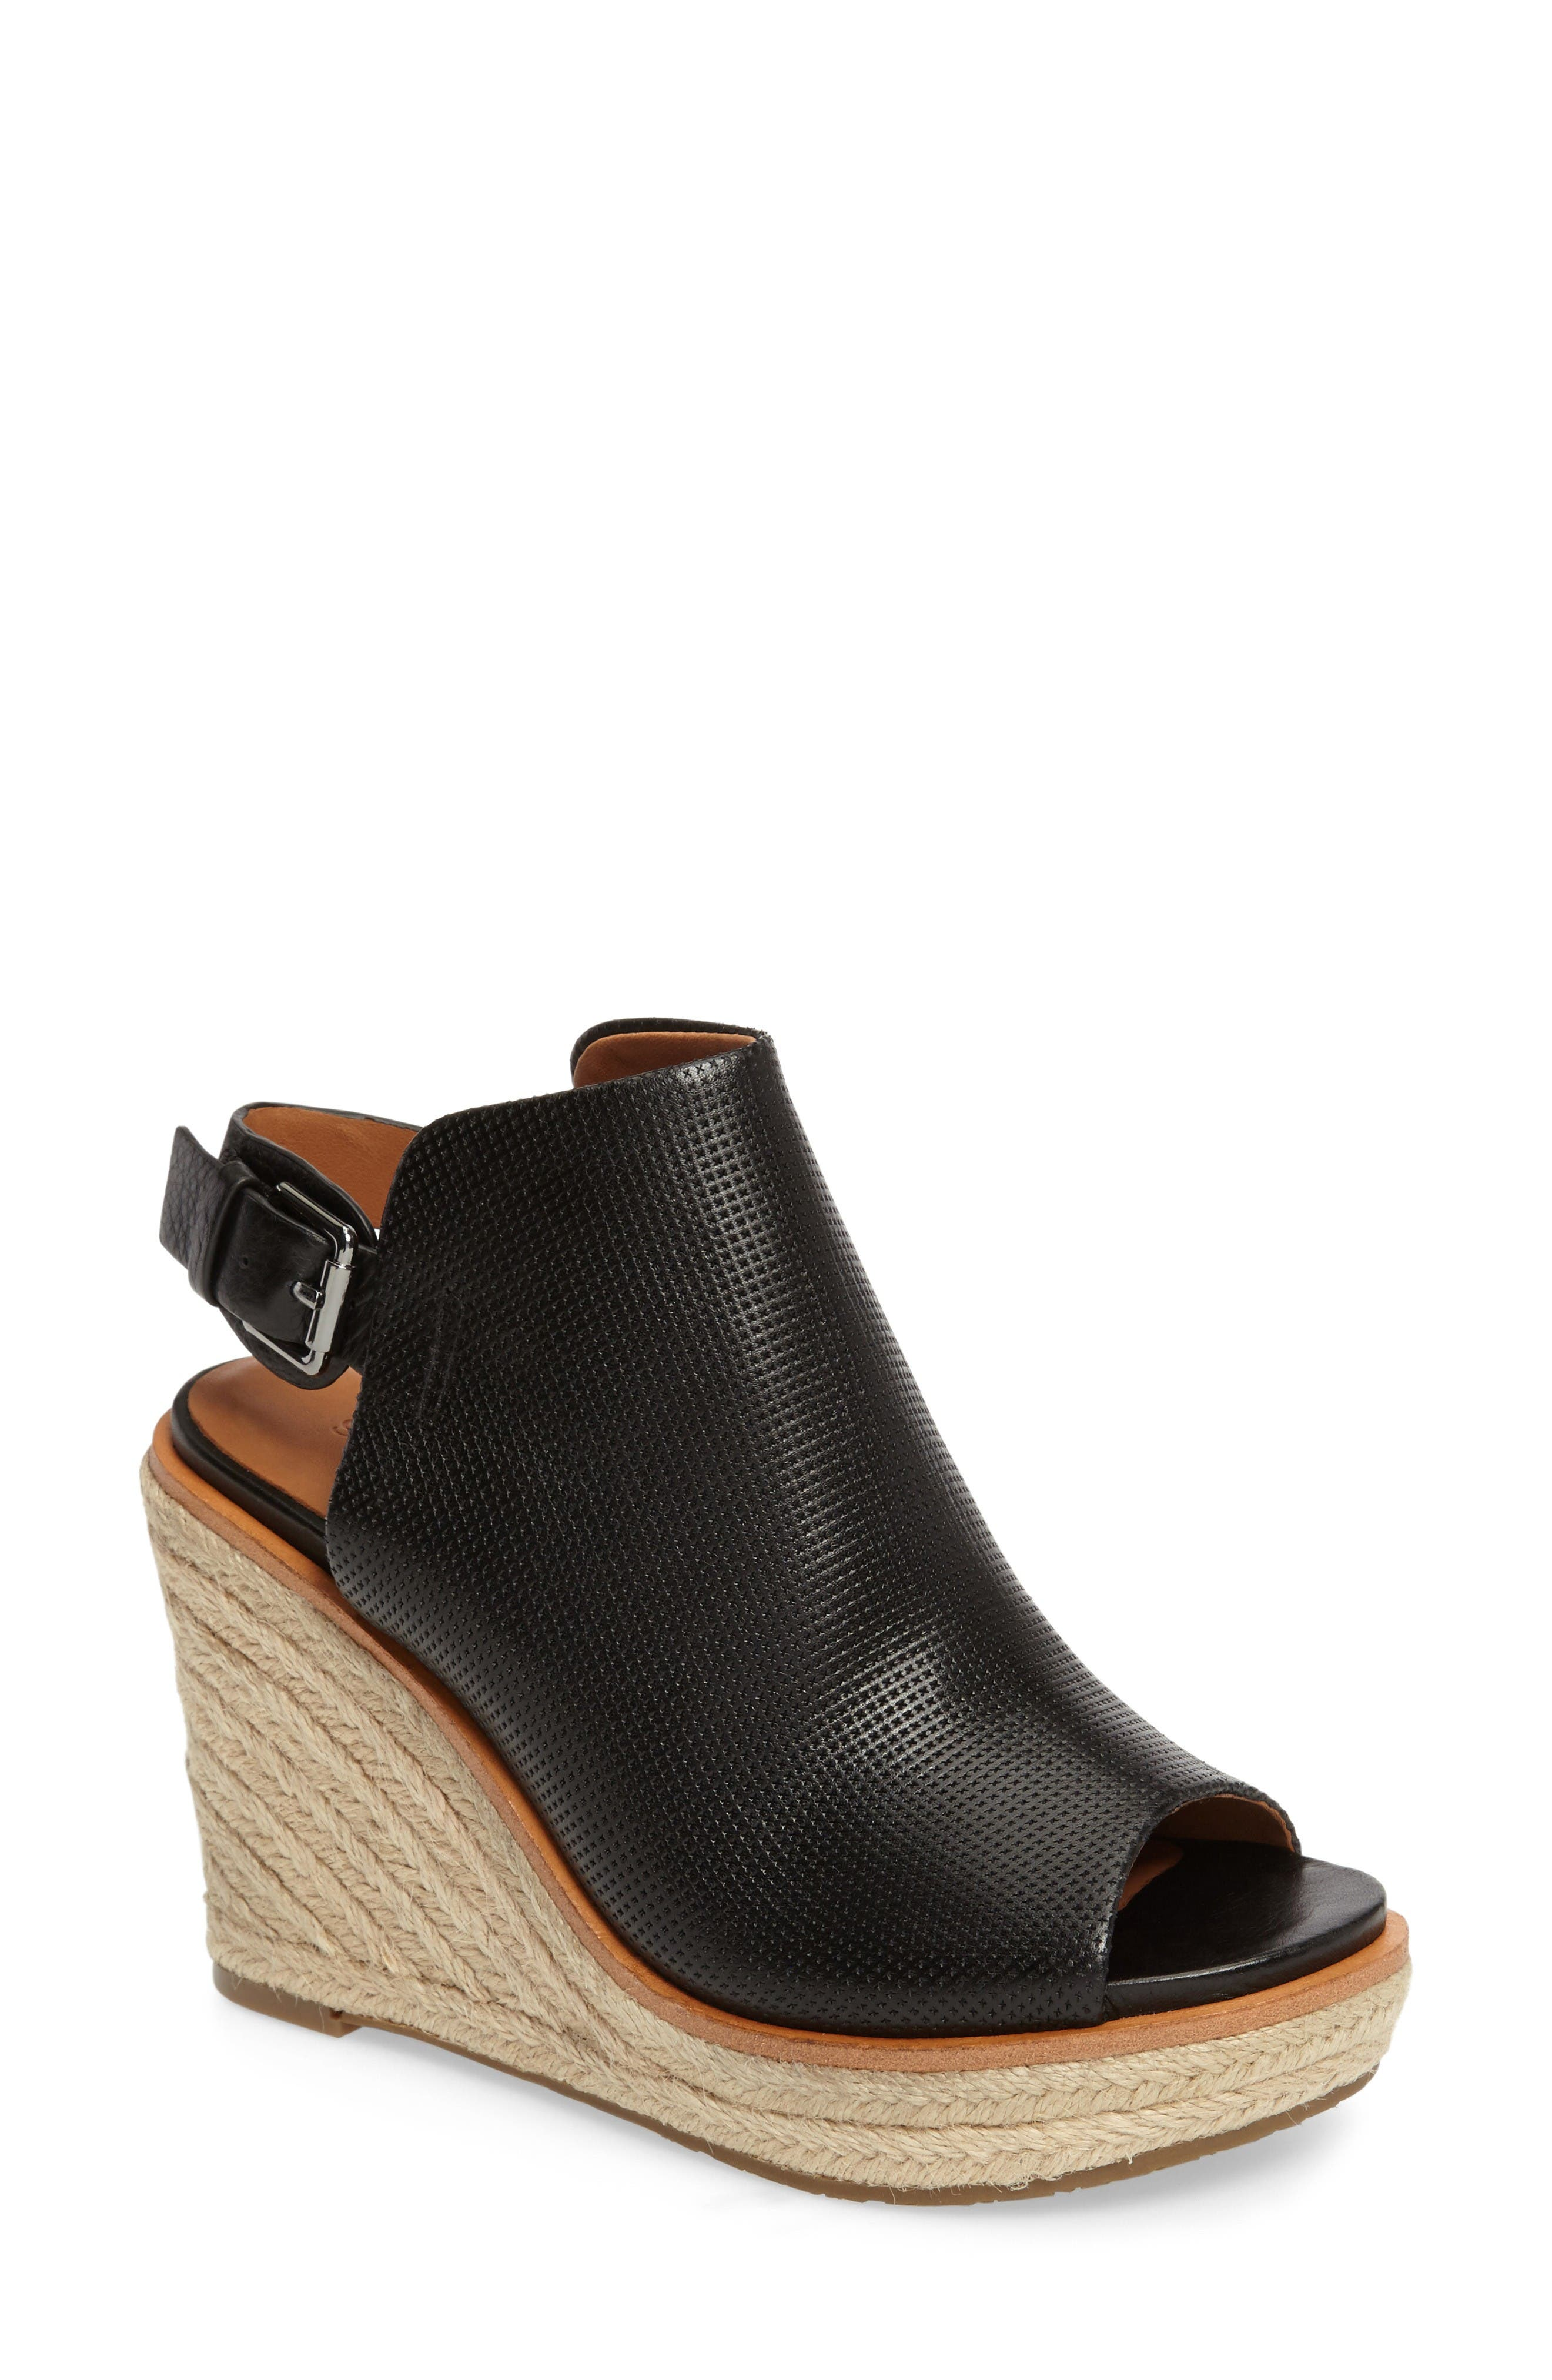 GENTLE SOULS Jacey Wedge Sandal